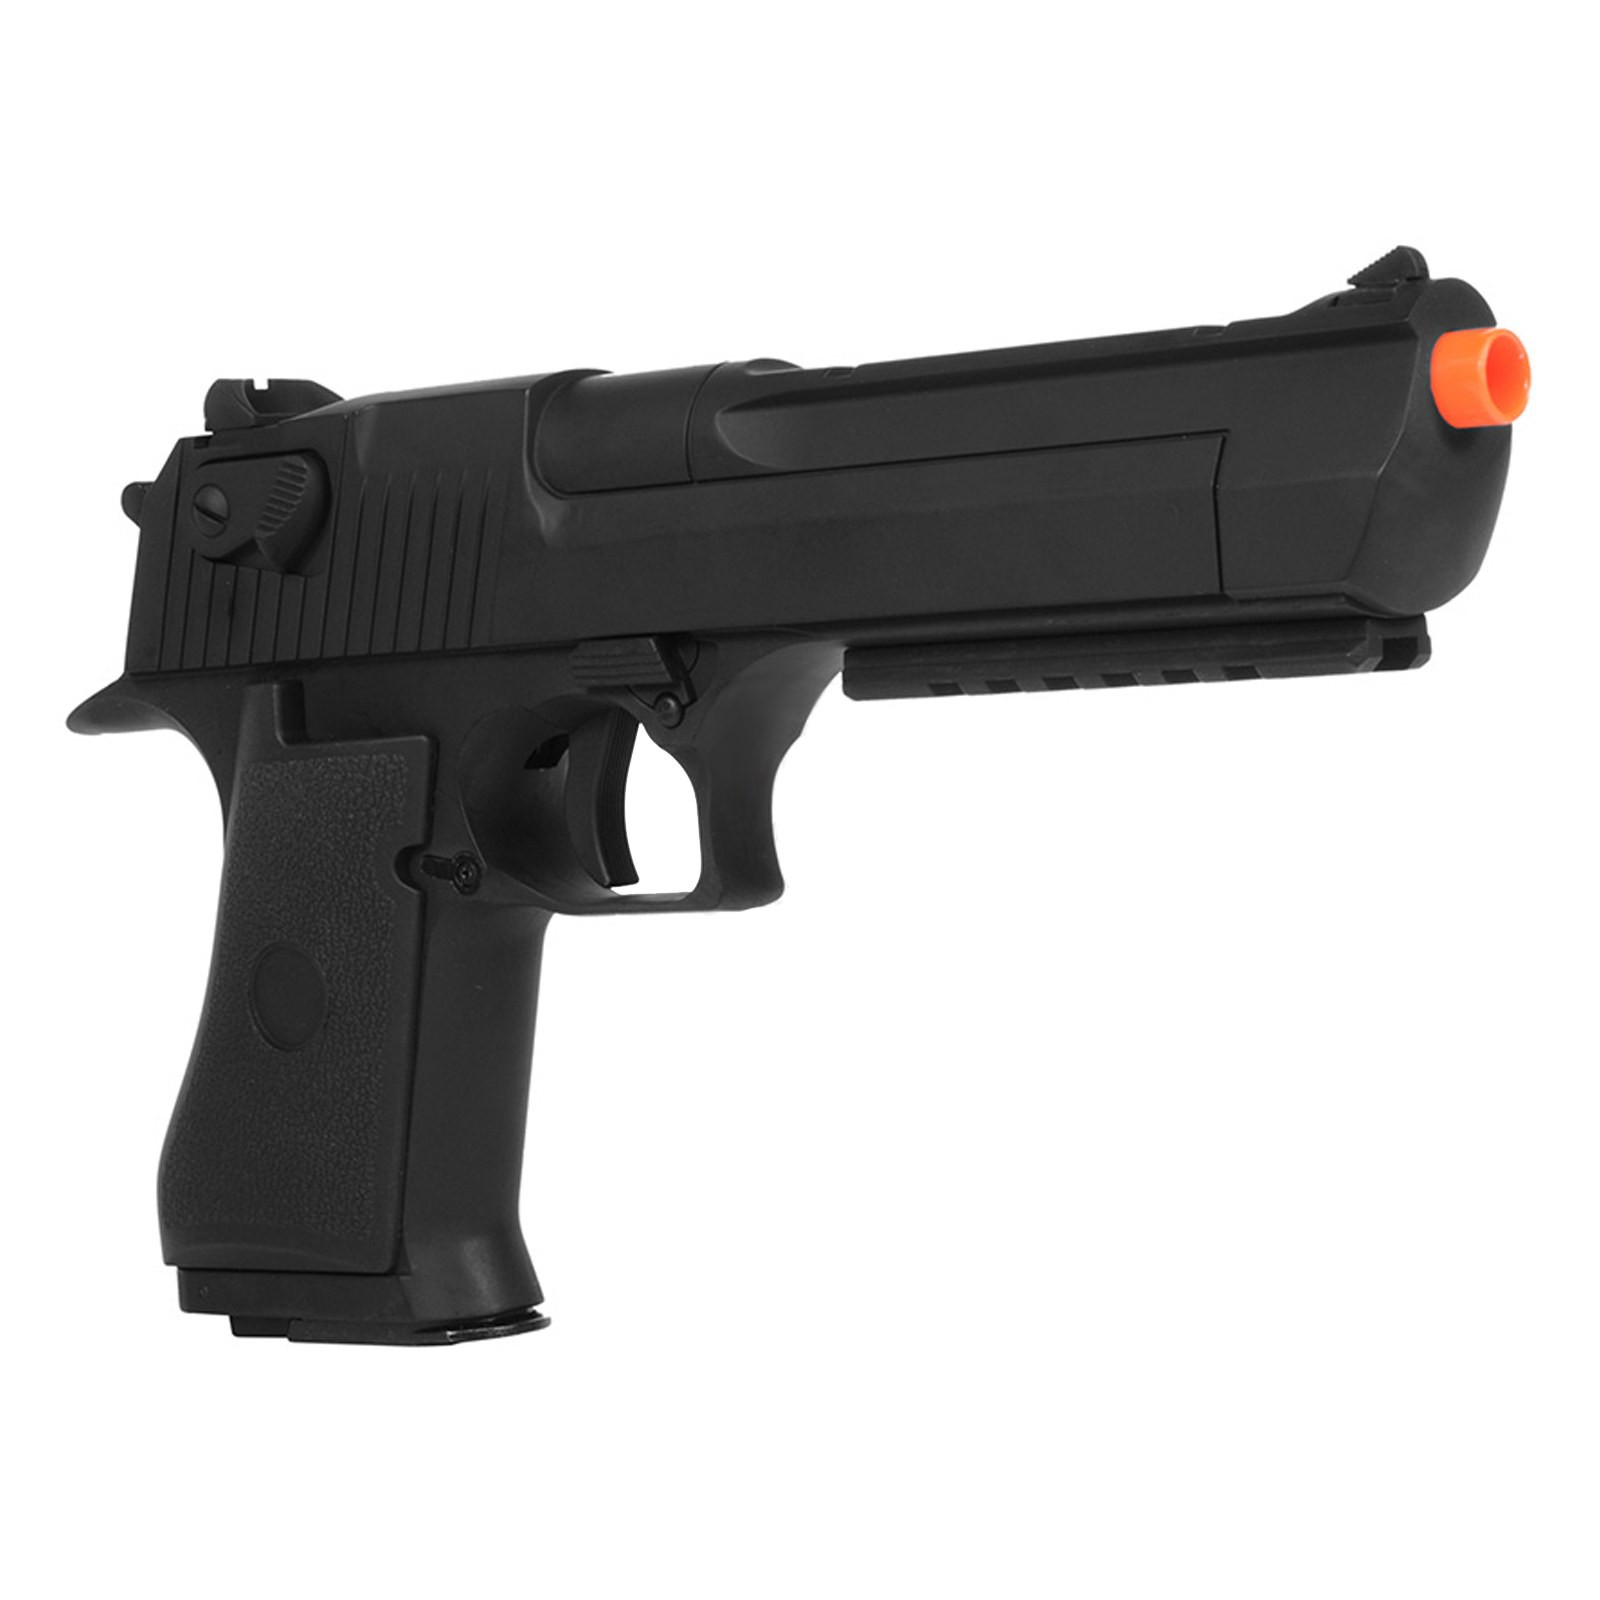 Pistola Desert Eagle Elettrica in Metallo Abs per Softair Raffica CYMA CM121